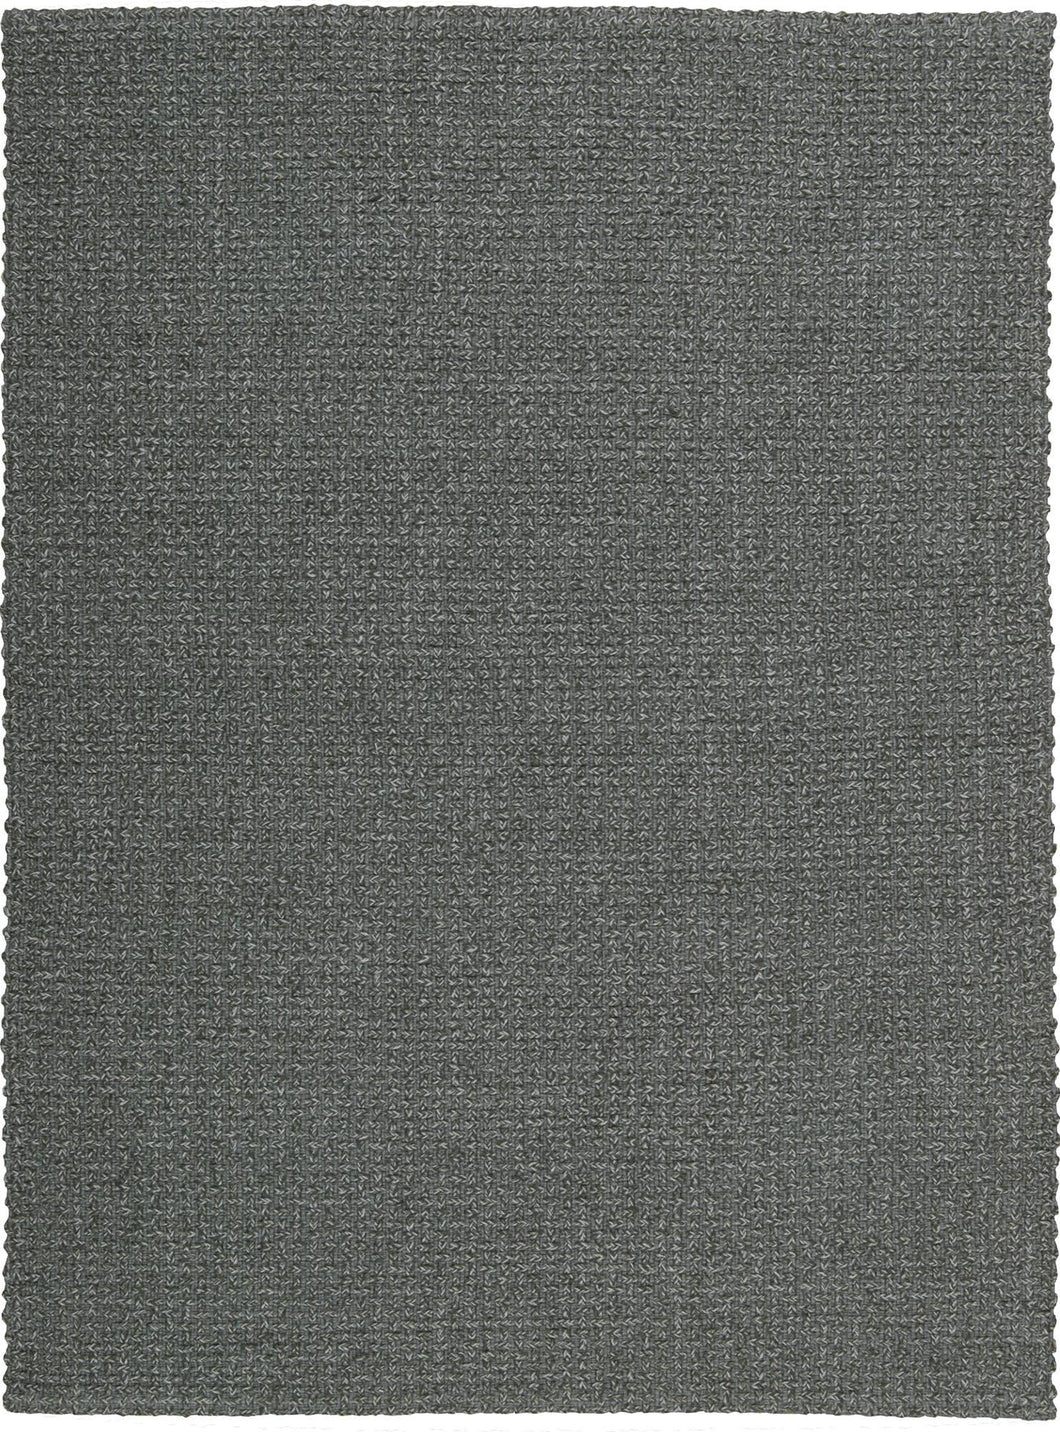 Joseph Abboud Sand And Slate Indigo Area Rug By Nourison SNS01 IND